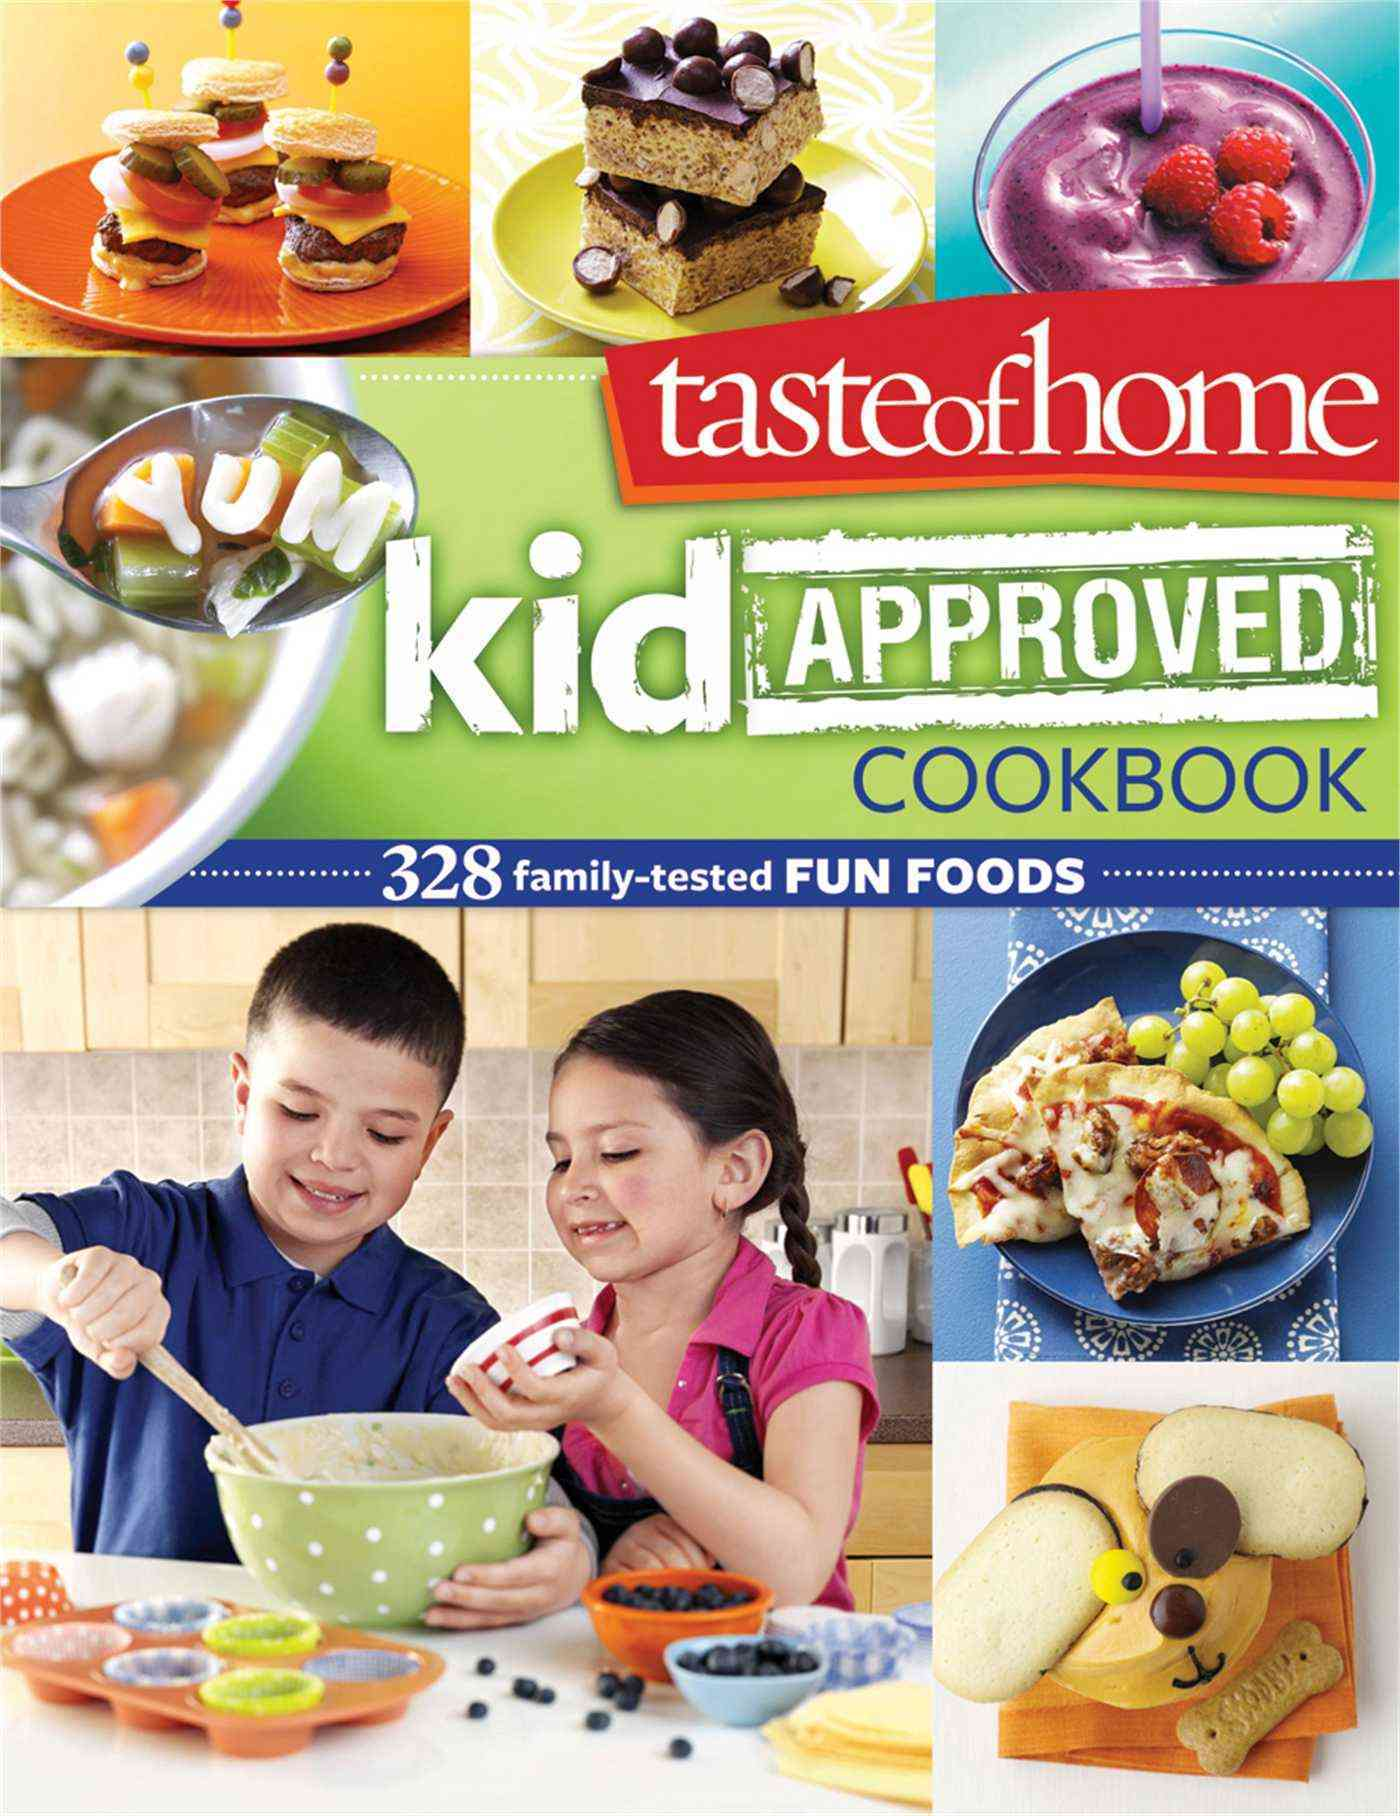 Kid-Approved Cook Book (Paperback)